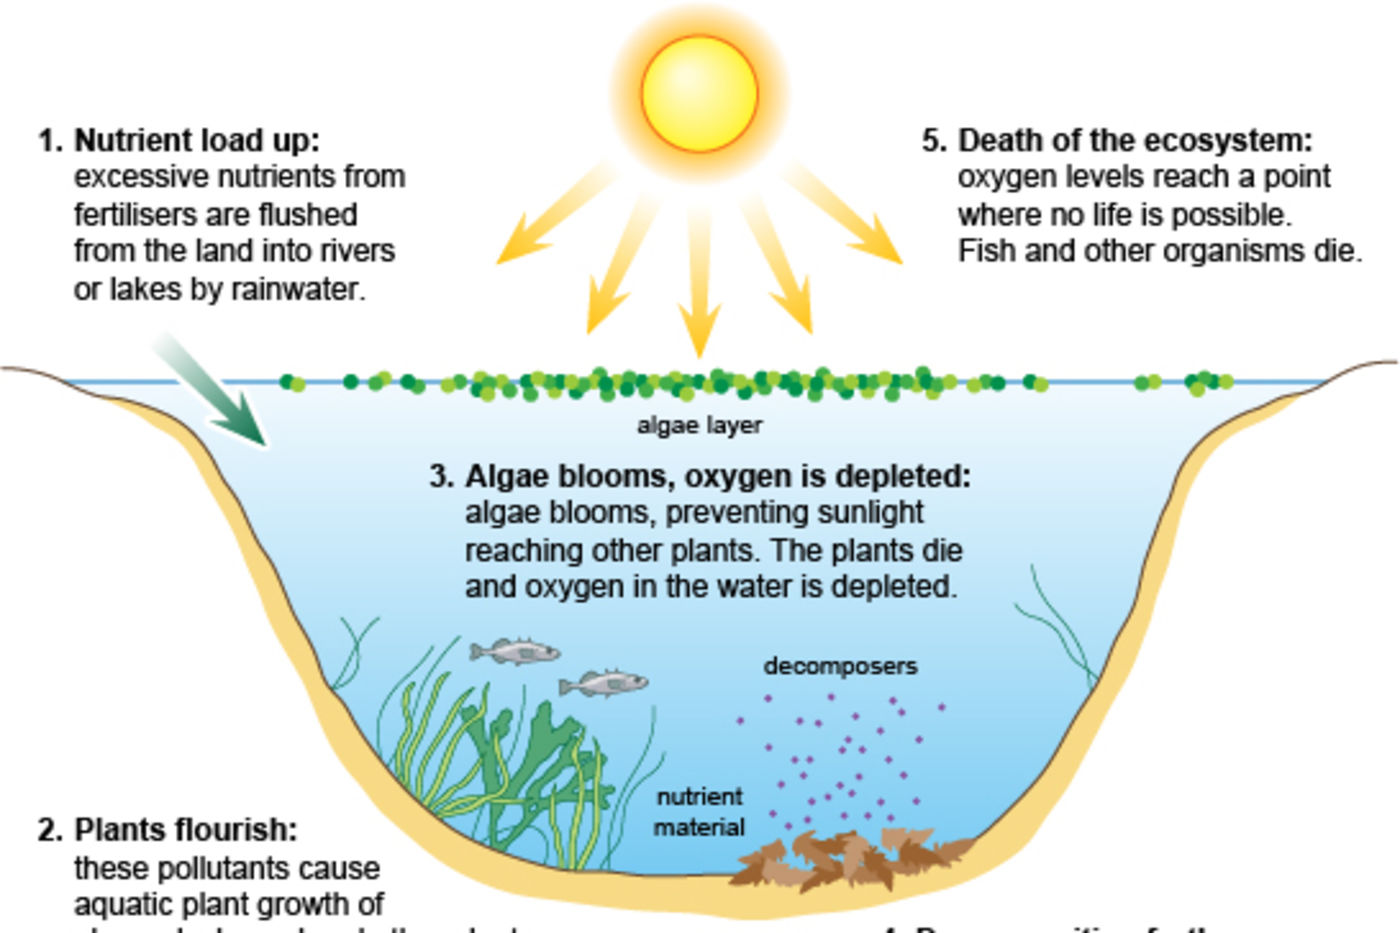 An explanatory graphic showing the process of eutrophication, with the sun shining, nutrients entering the water, and fish dying.